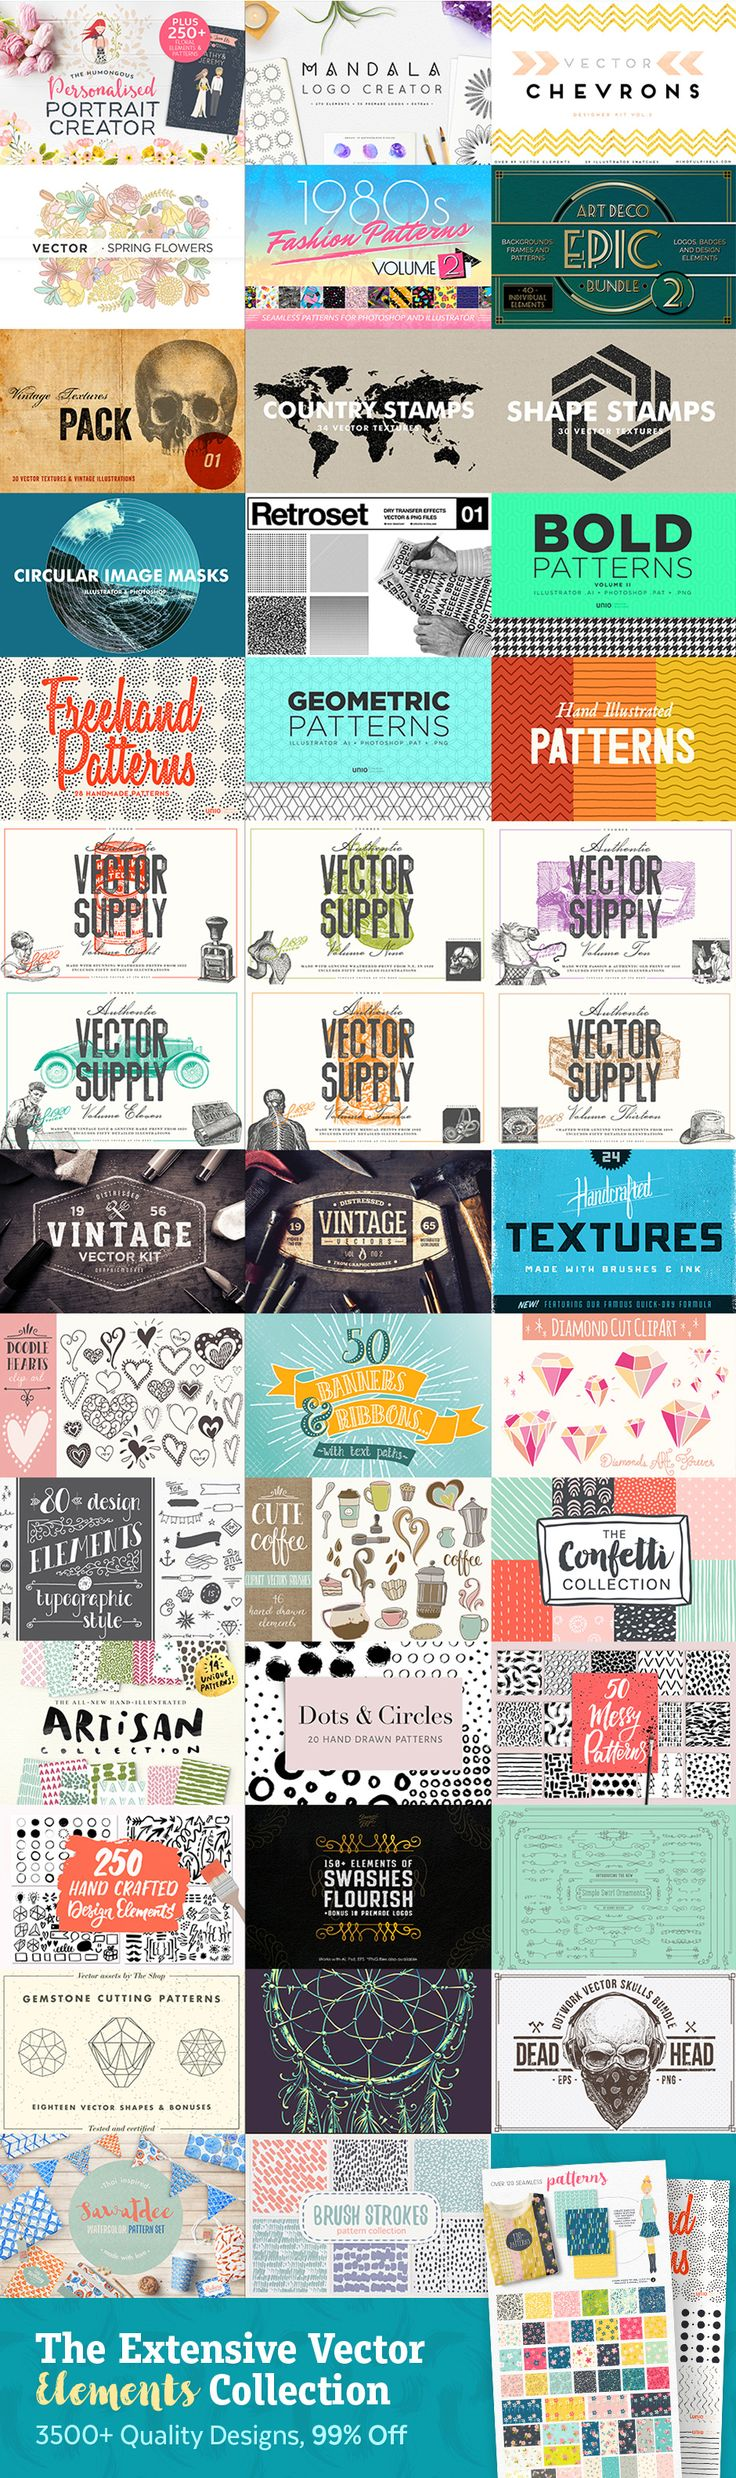 a336fb4669 The Extensive Vector Elements Collection